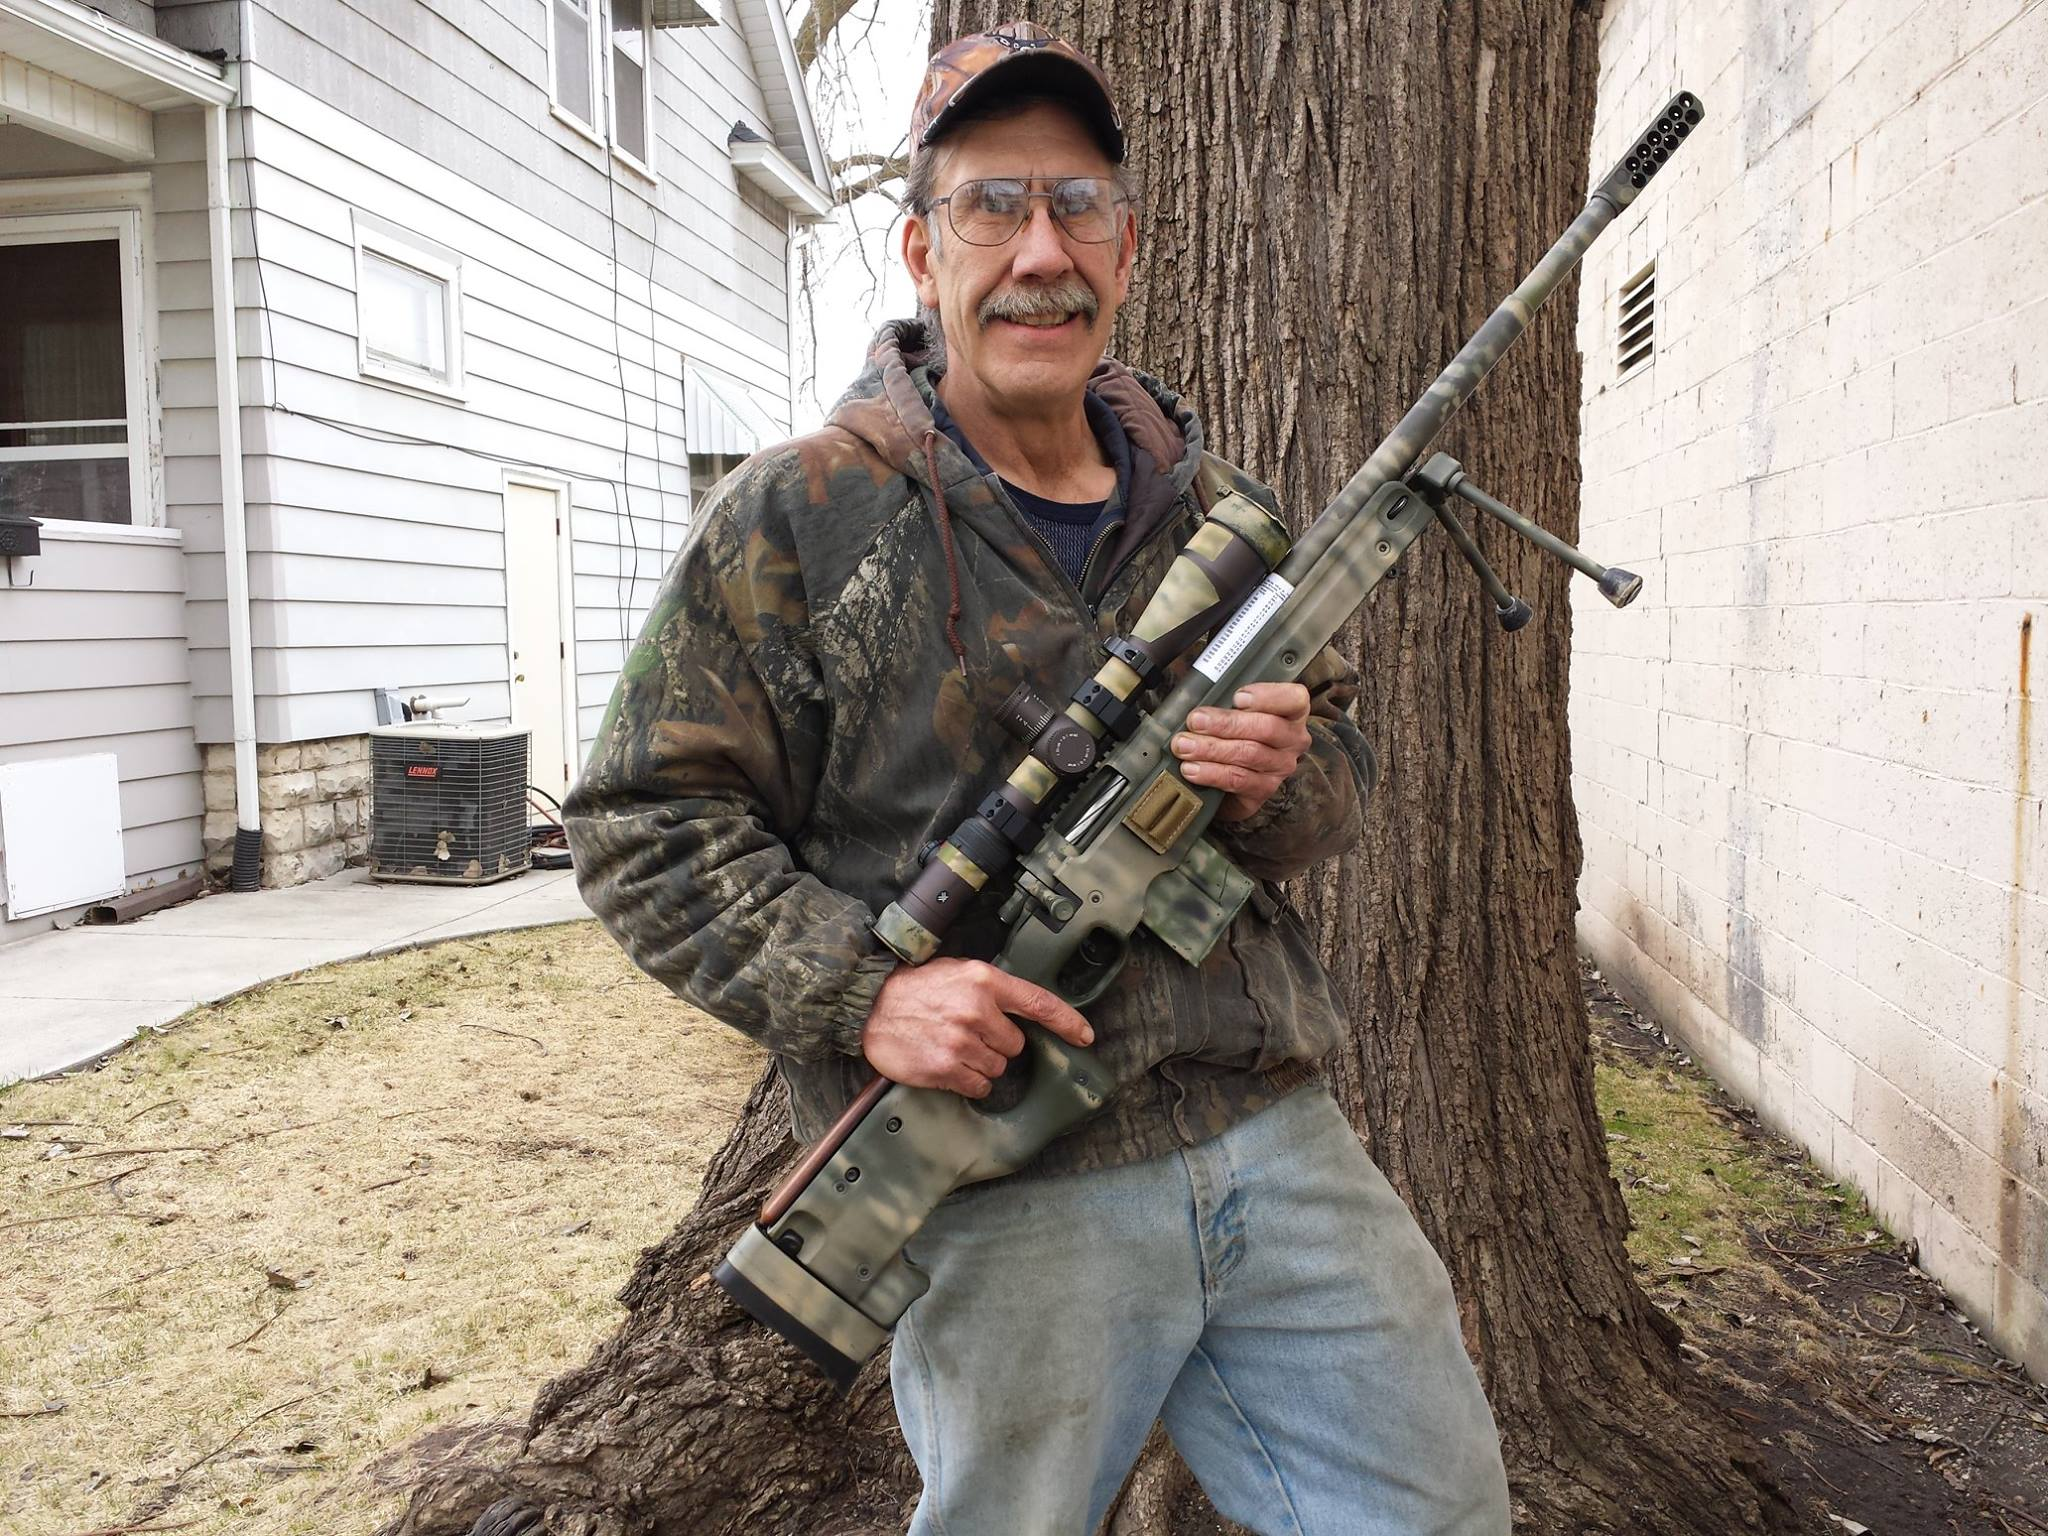 John Huber showing off his rifle next to the shop!